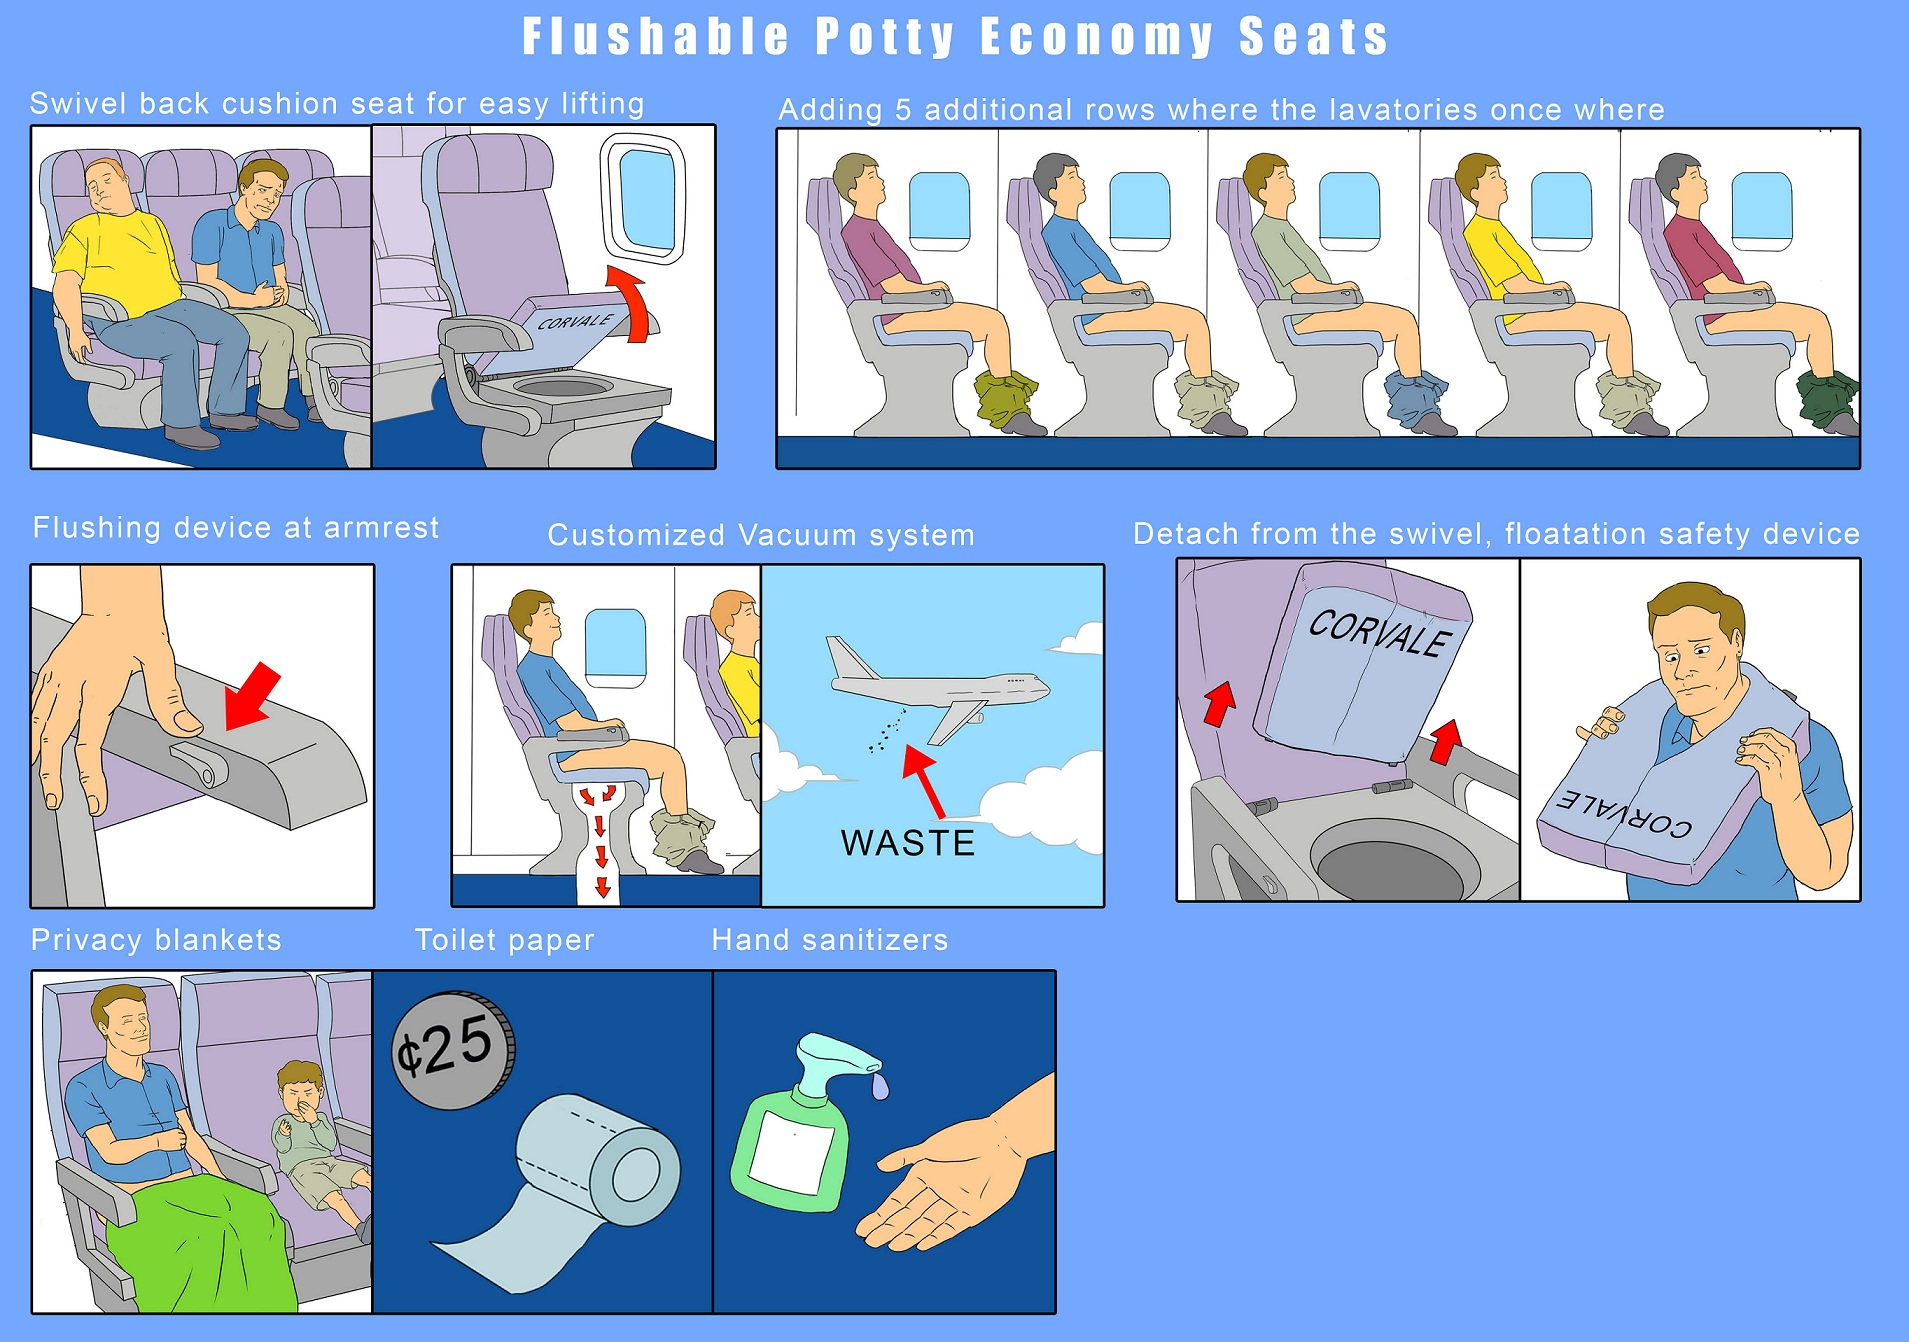 U.S Low Cost Airlines Excited to start Providing Flushable Potty ...